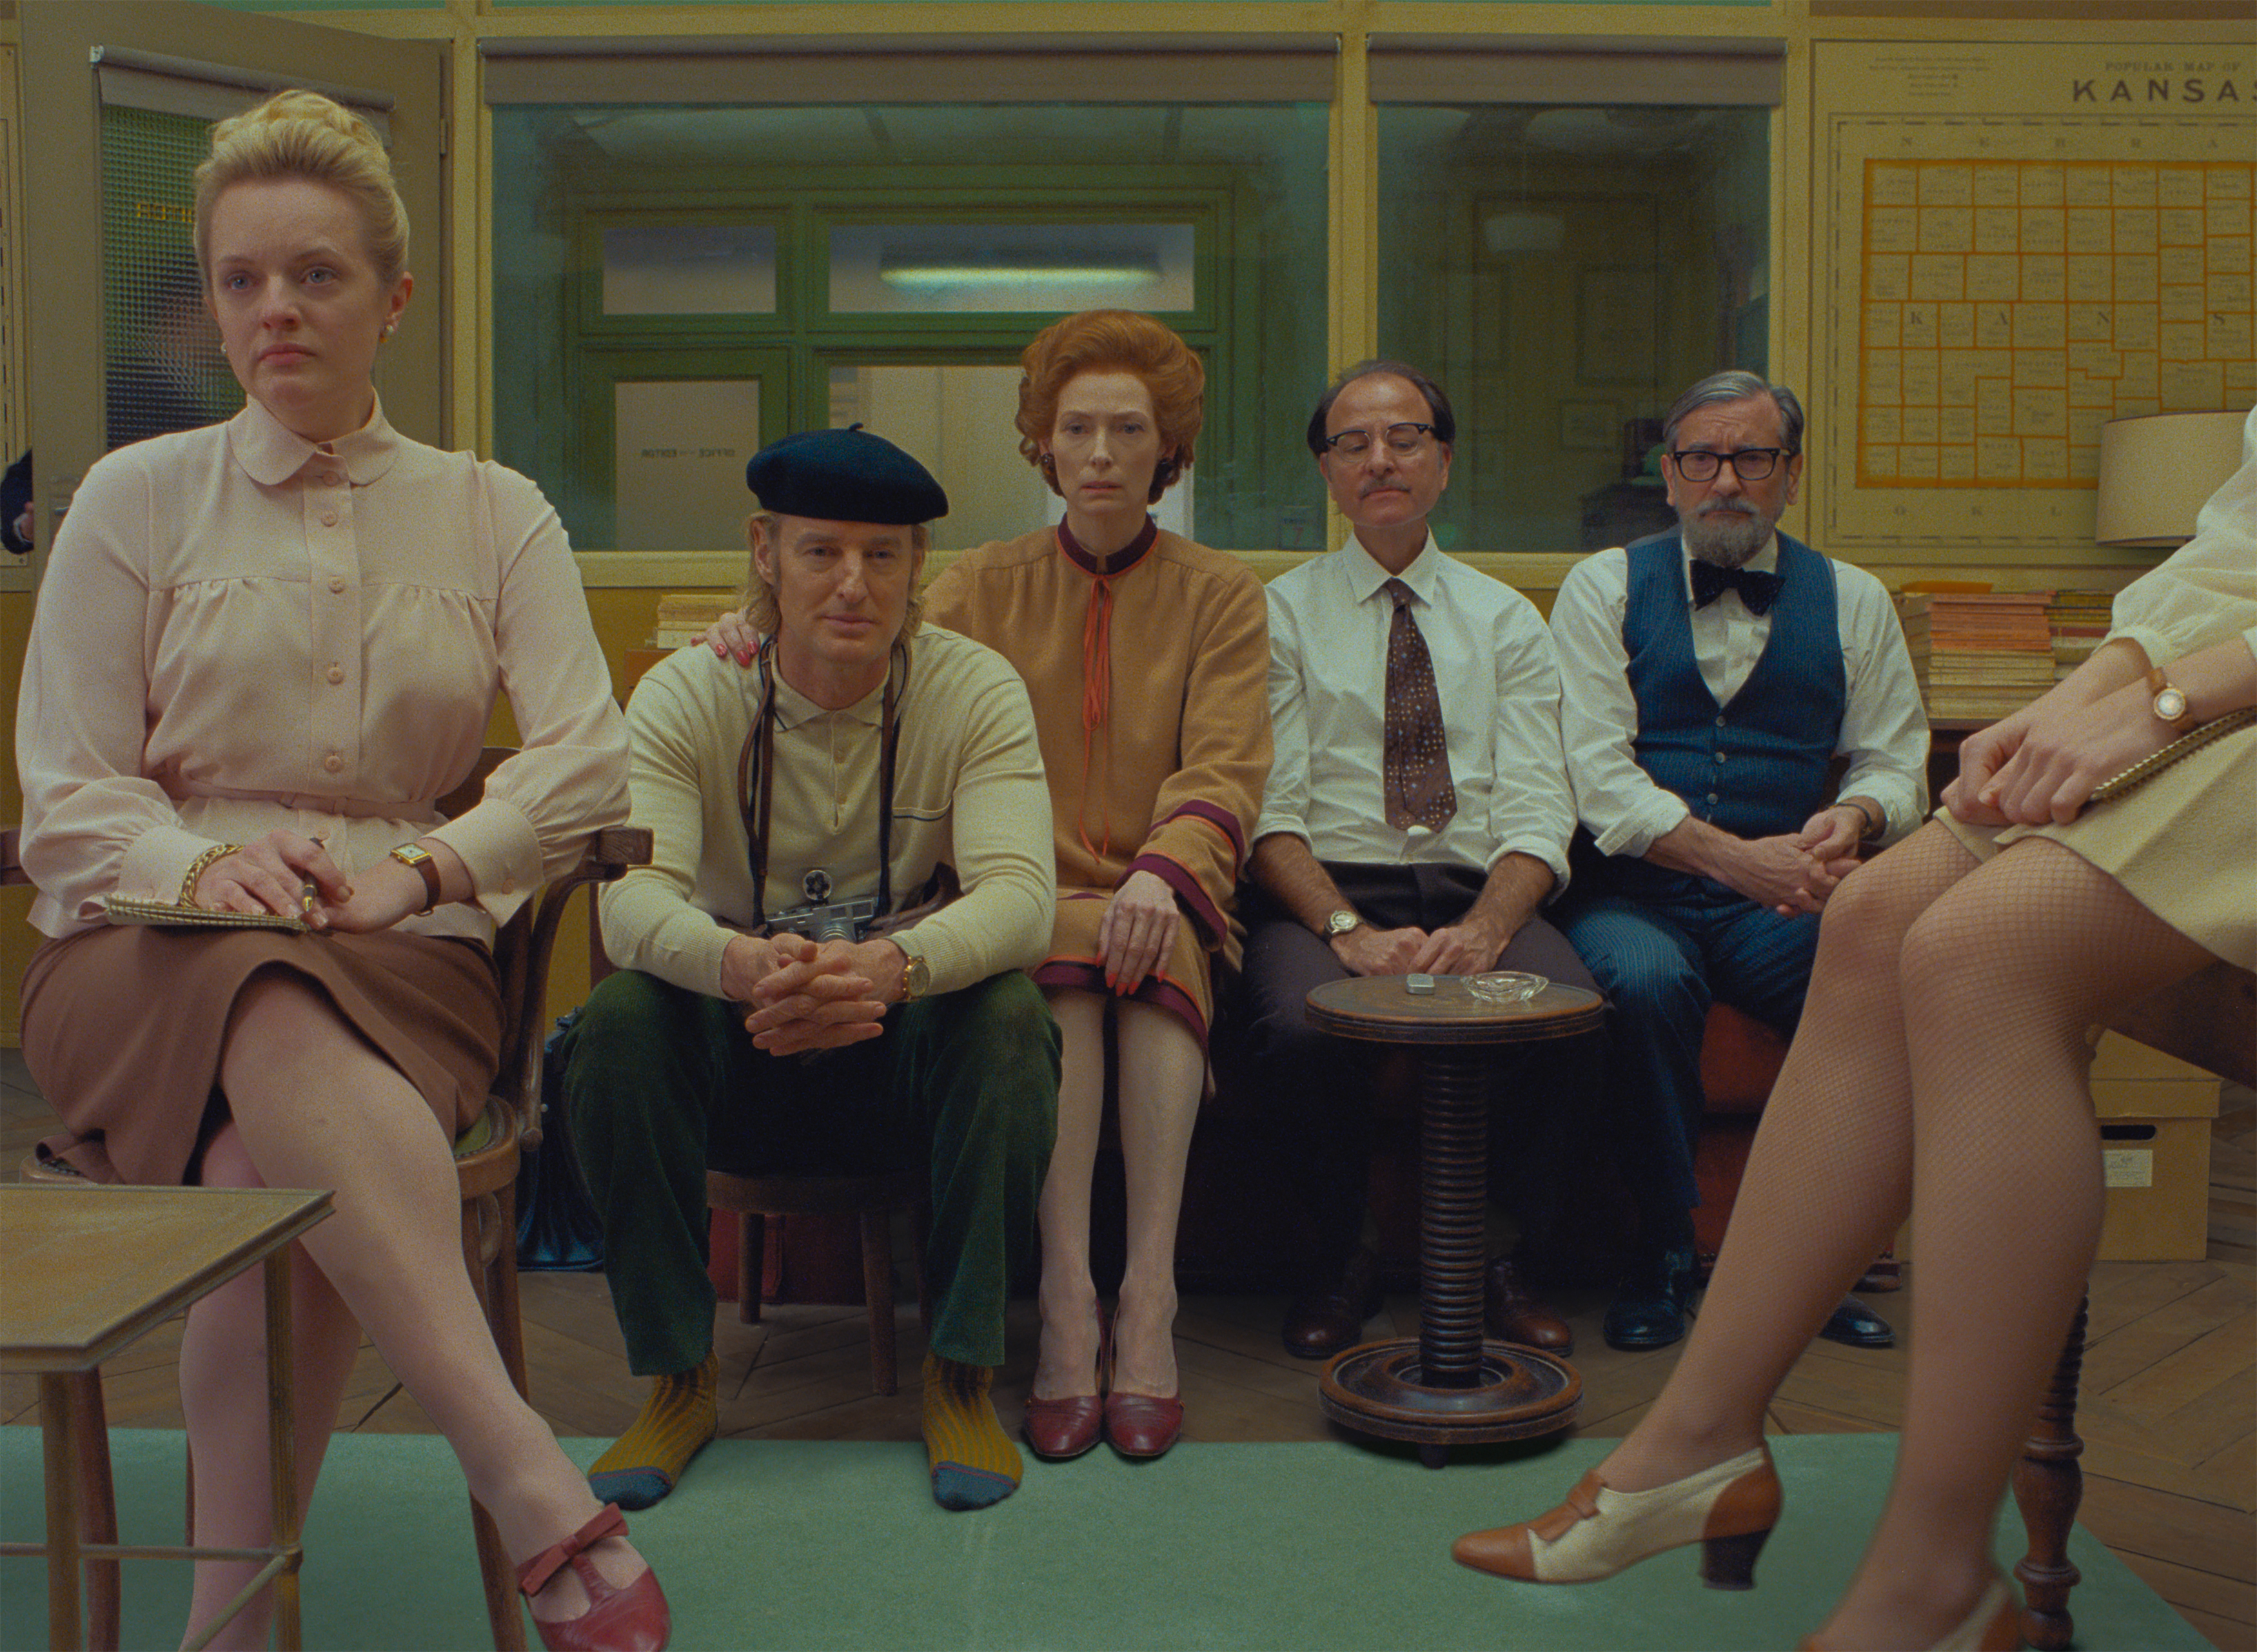 (From L-R): Elisabeth Moss, Owen Wilson, Tilda Swinton, Fisher Stevens and Griffin Dunne in the film THE FRENCH DISPATCH. Photo Courtesy of  Searchlight Pictures. © 2020 Twentieth Century Fox Film Corporation All Rights Reserved